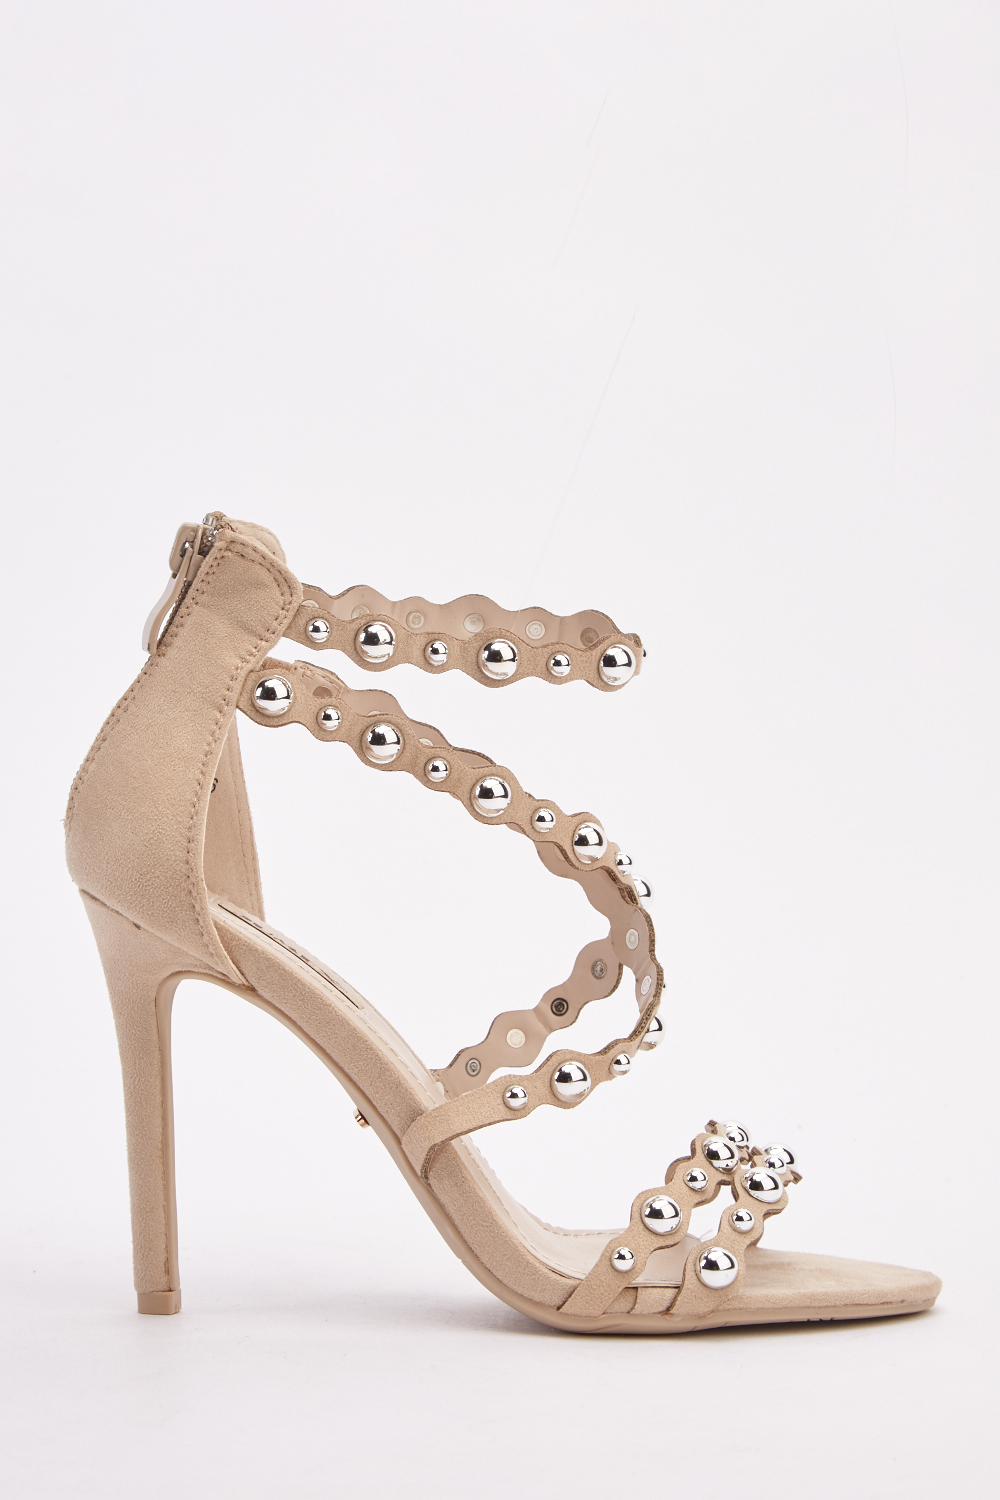 d8dbb2aec8d Embellished Strappy Heeled Sandals - 3 Colours - Just £5